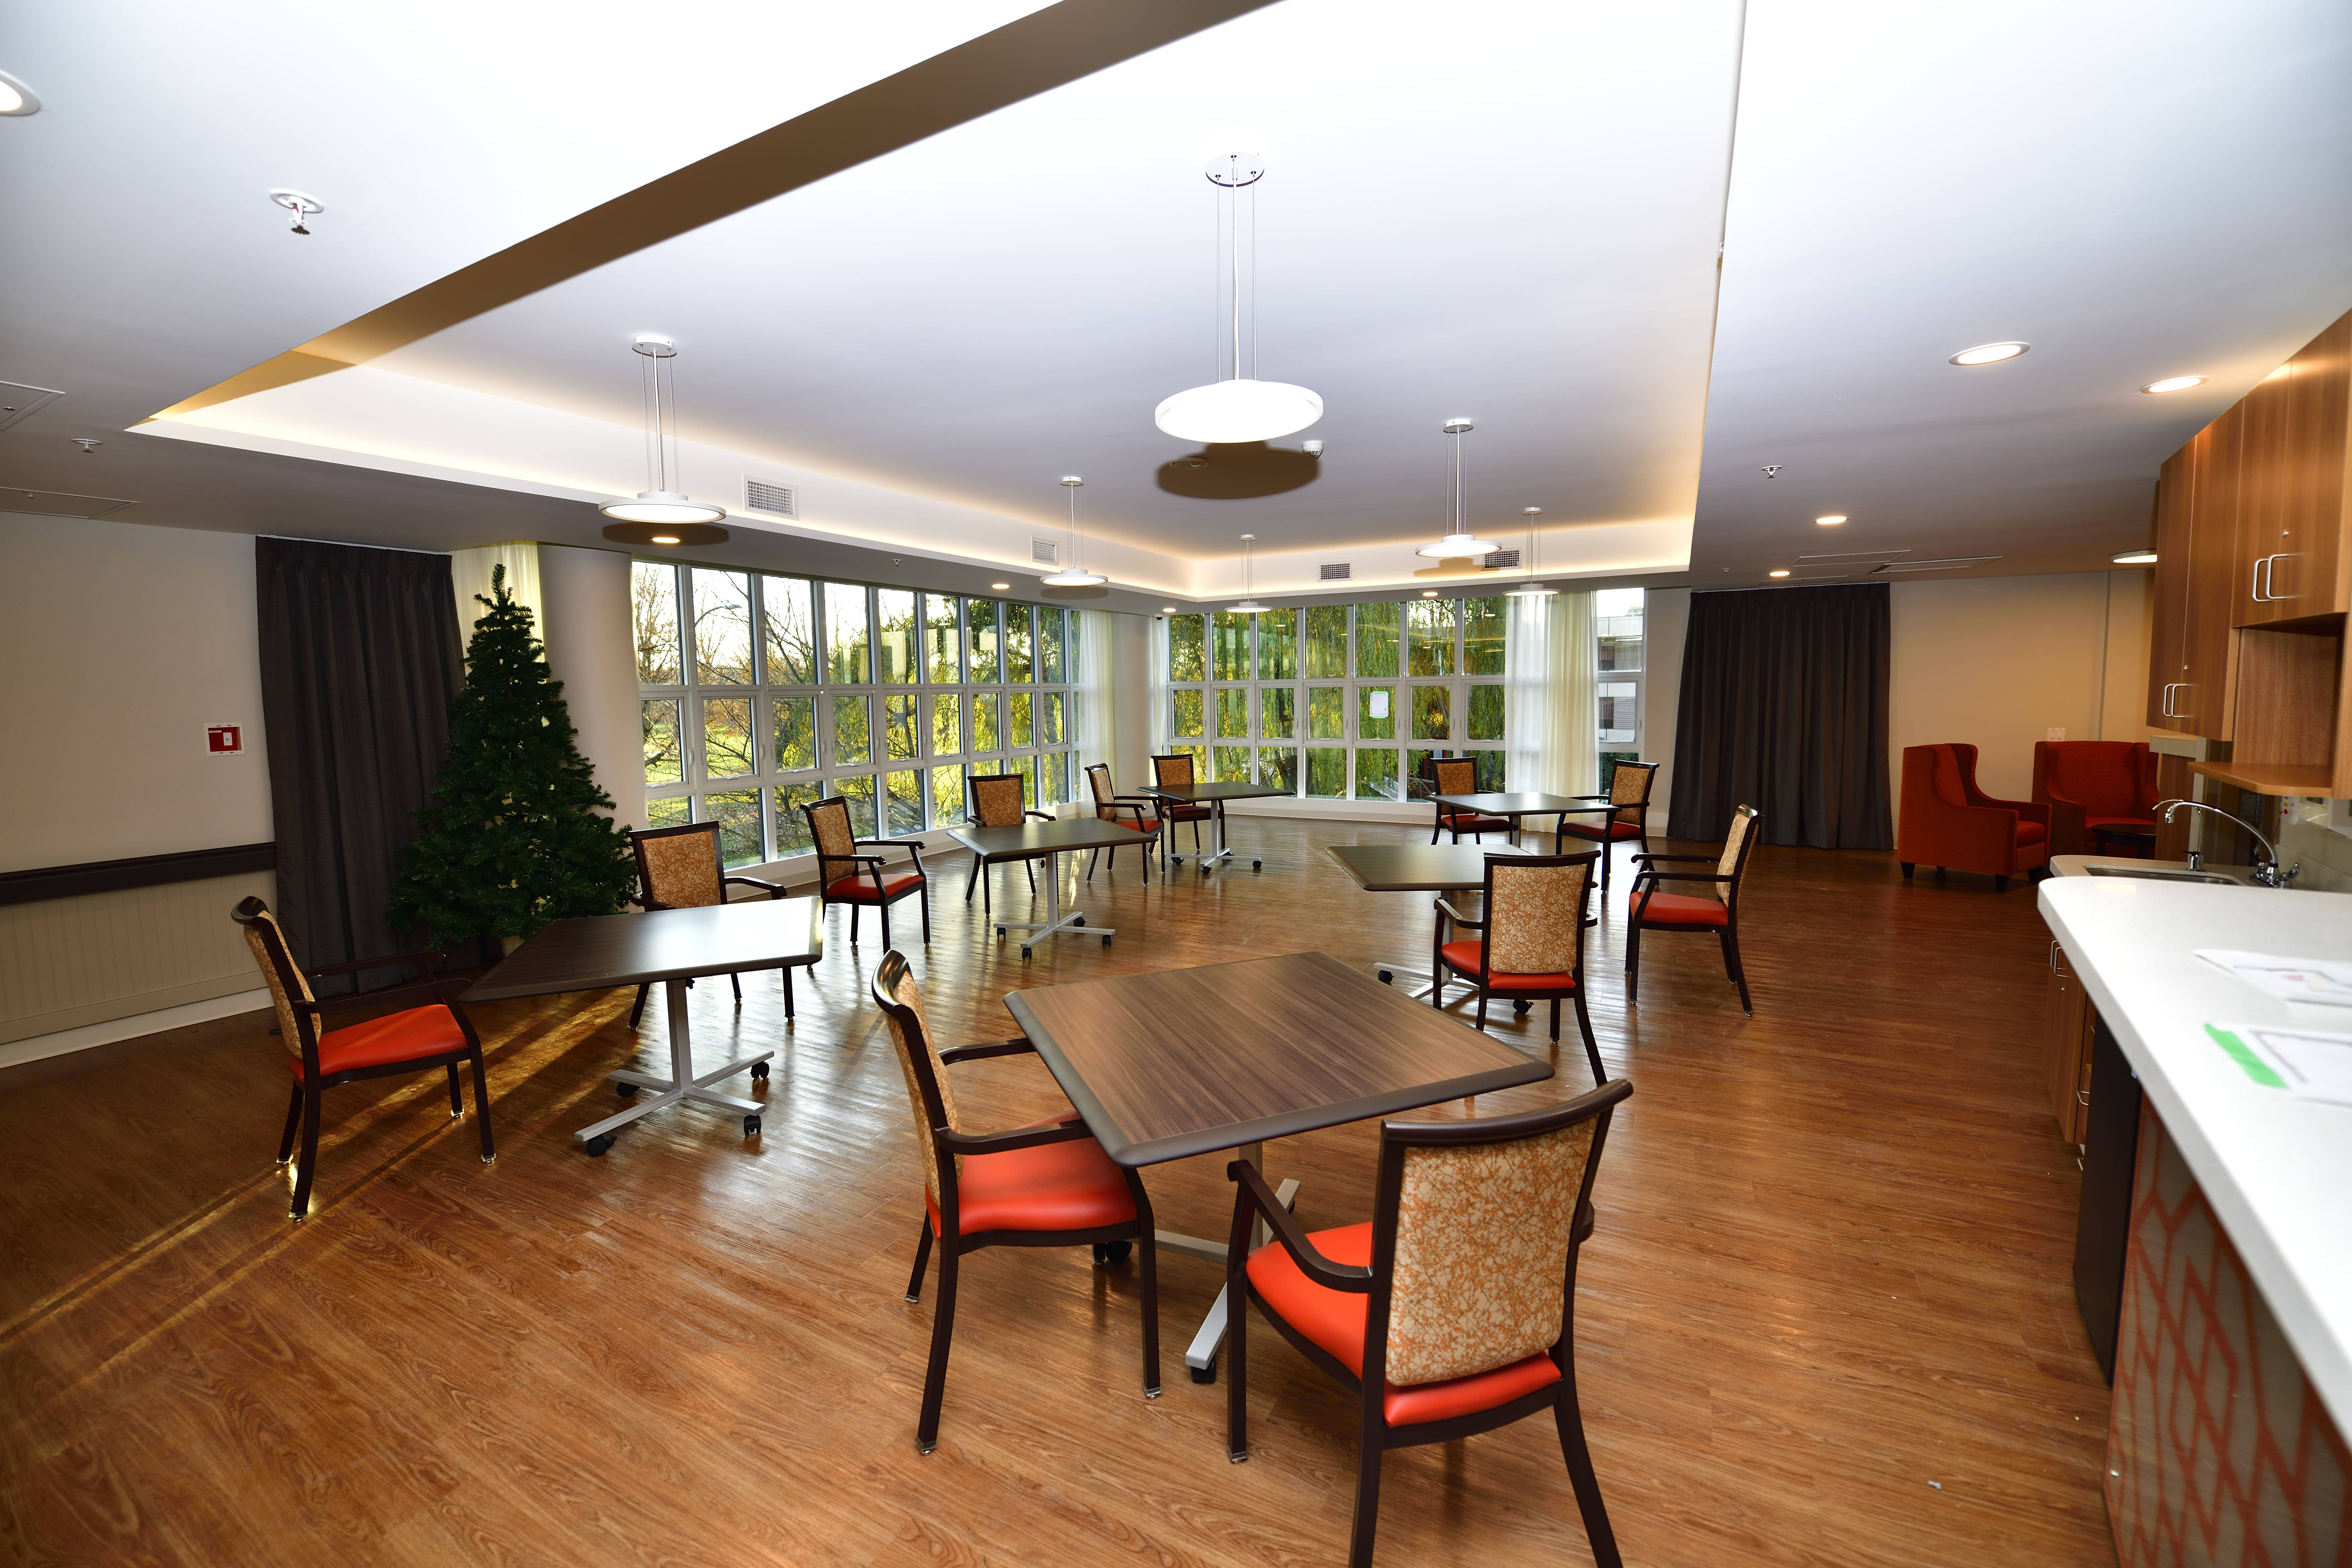 Senior Home Amenities: Dining Room and Lounge